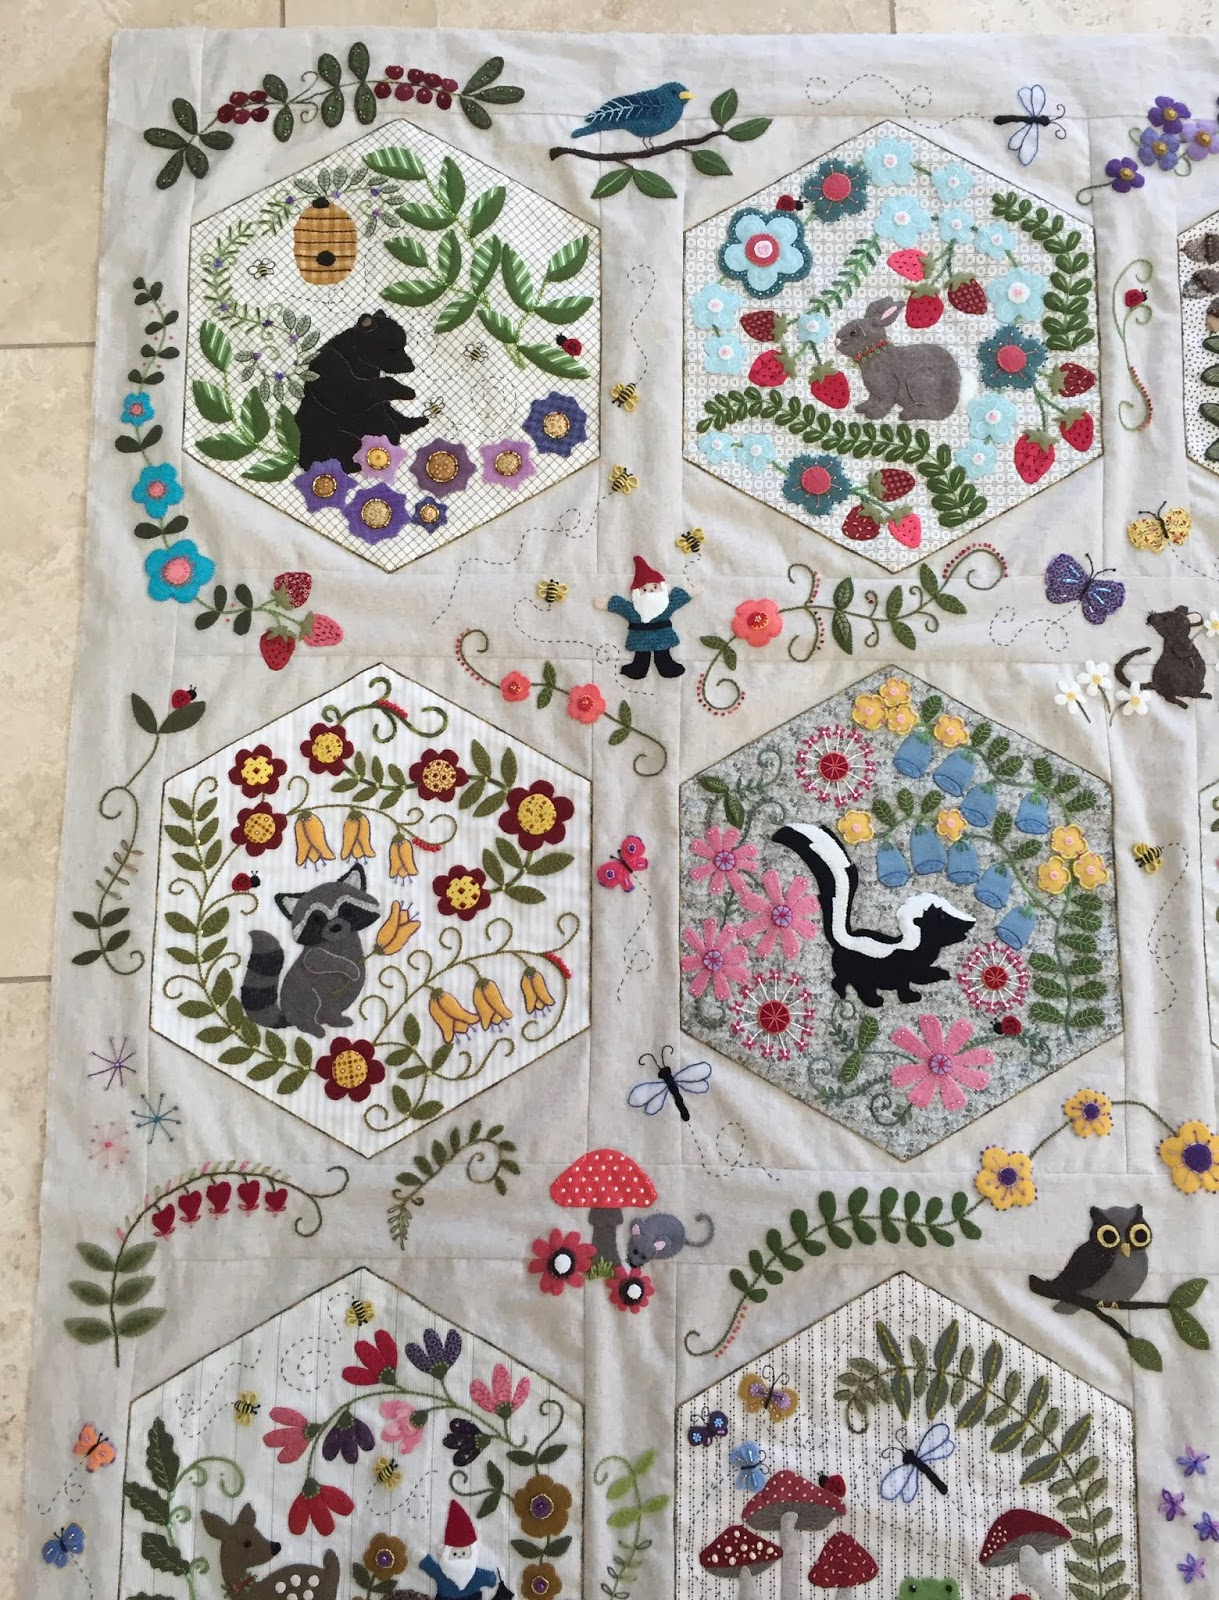 Sew Fun 2 Quilt Woodland Whimsy Quilt Top Complete